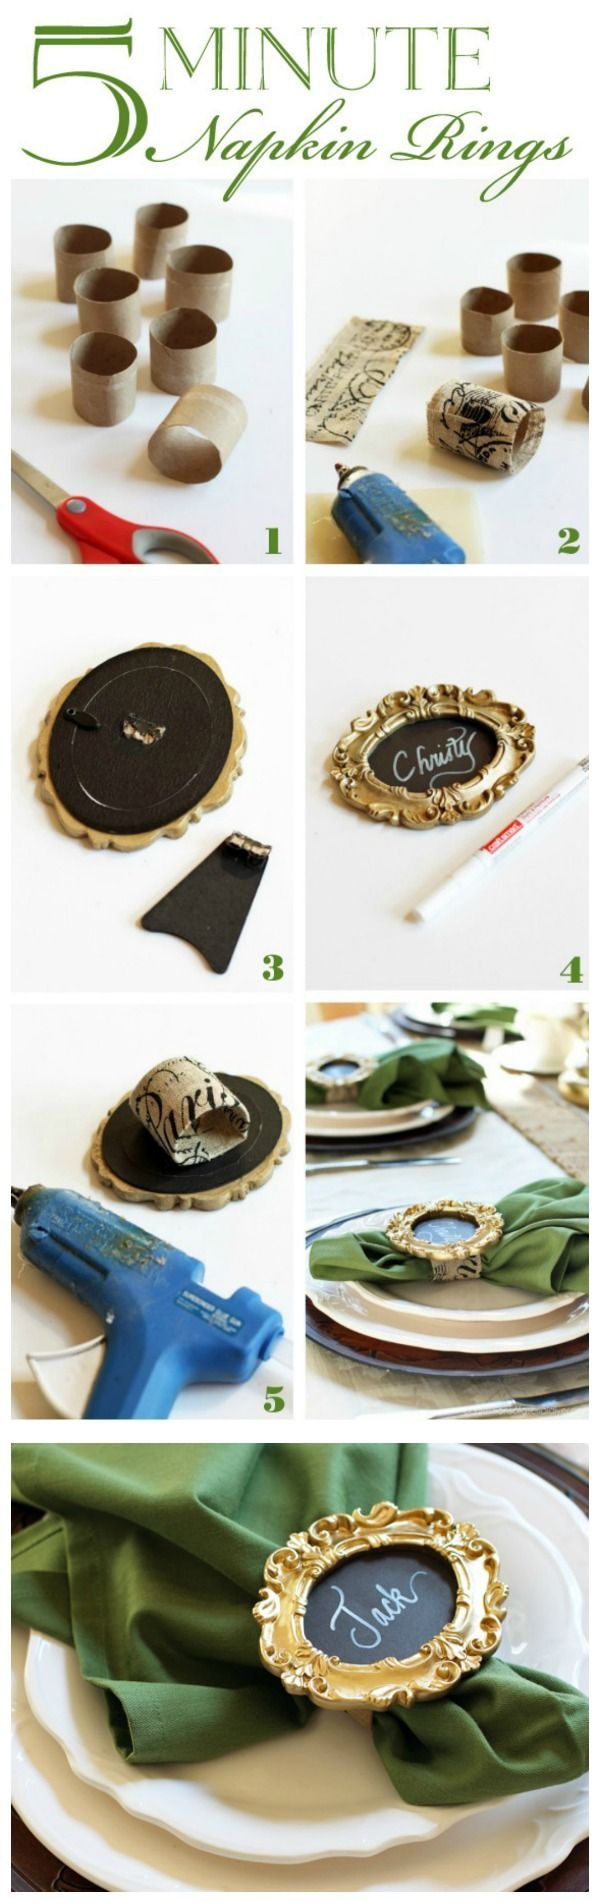 Five-minute Napkin RIngs using Mini Photo Frames from confessionsofaserialdiyer.com